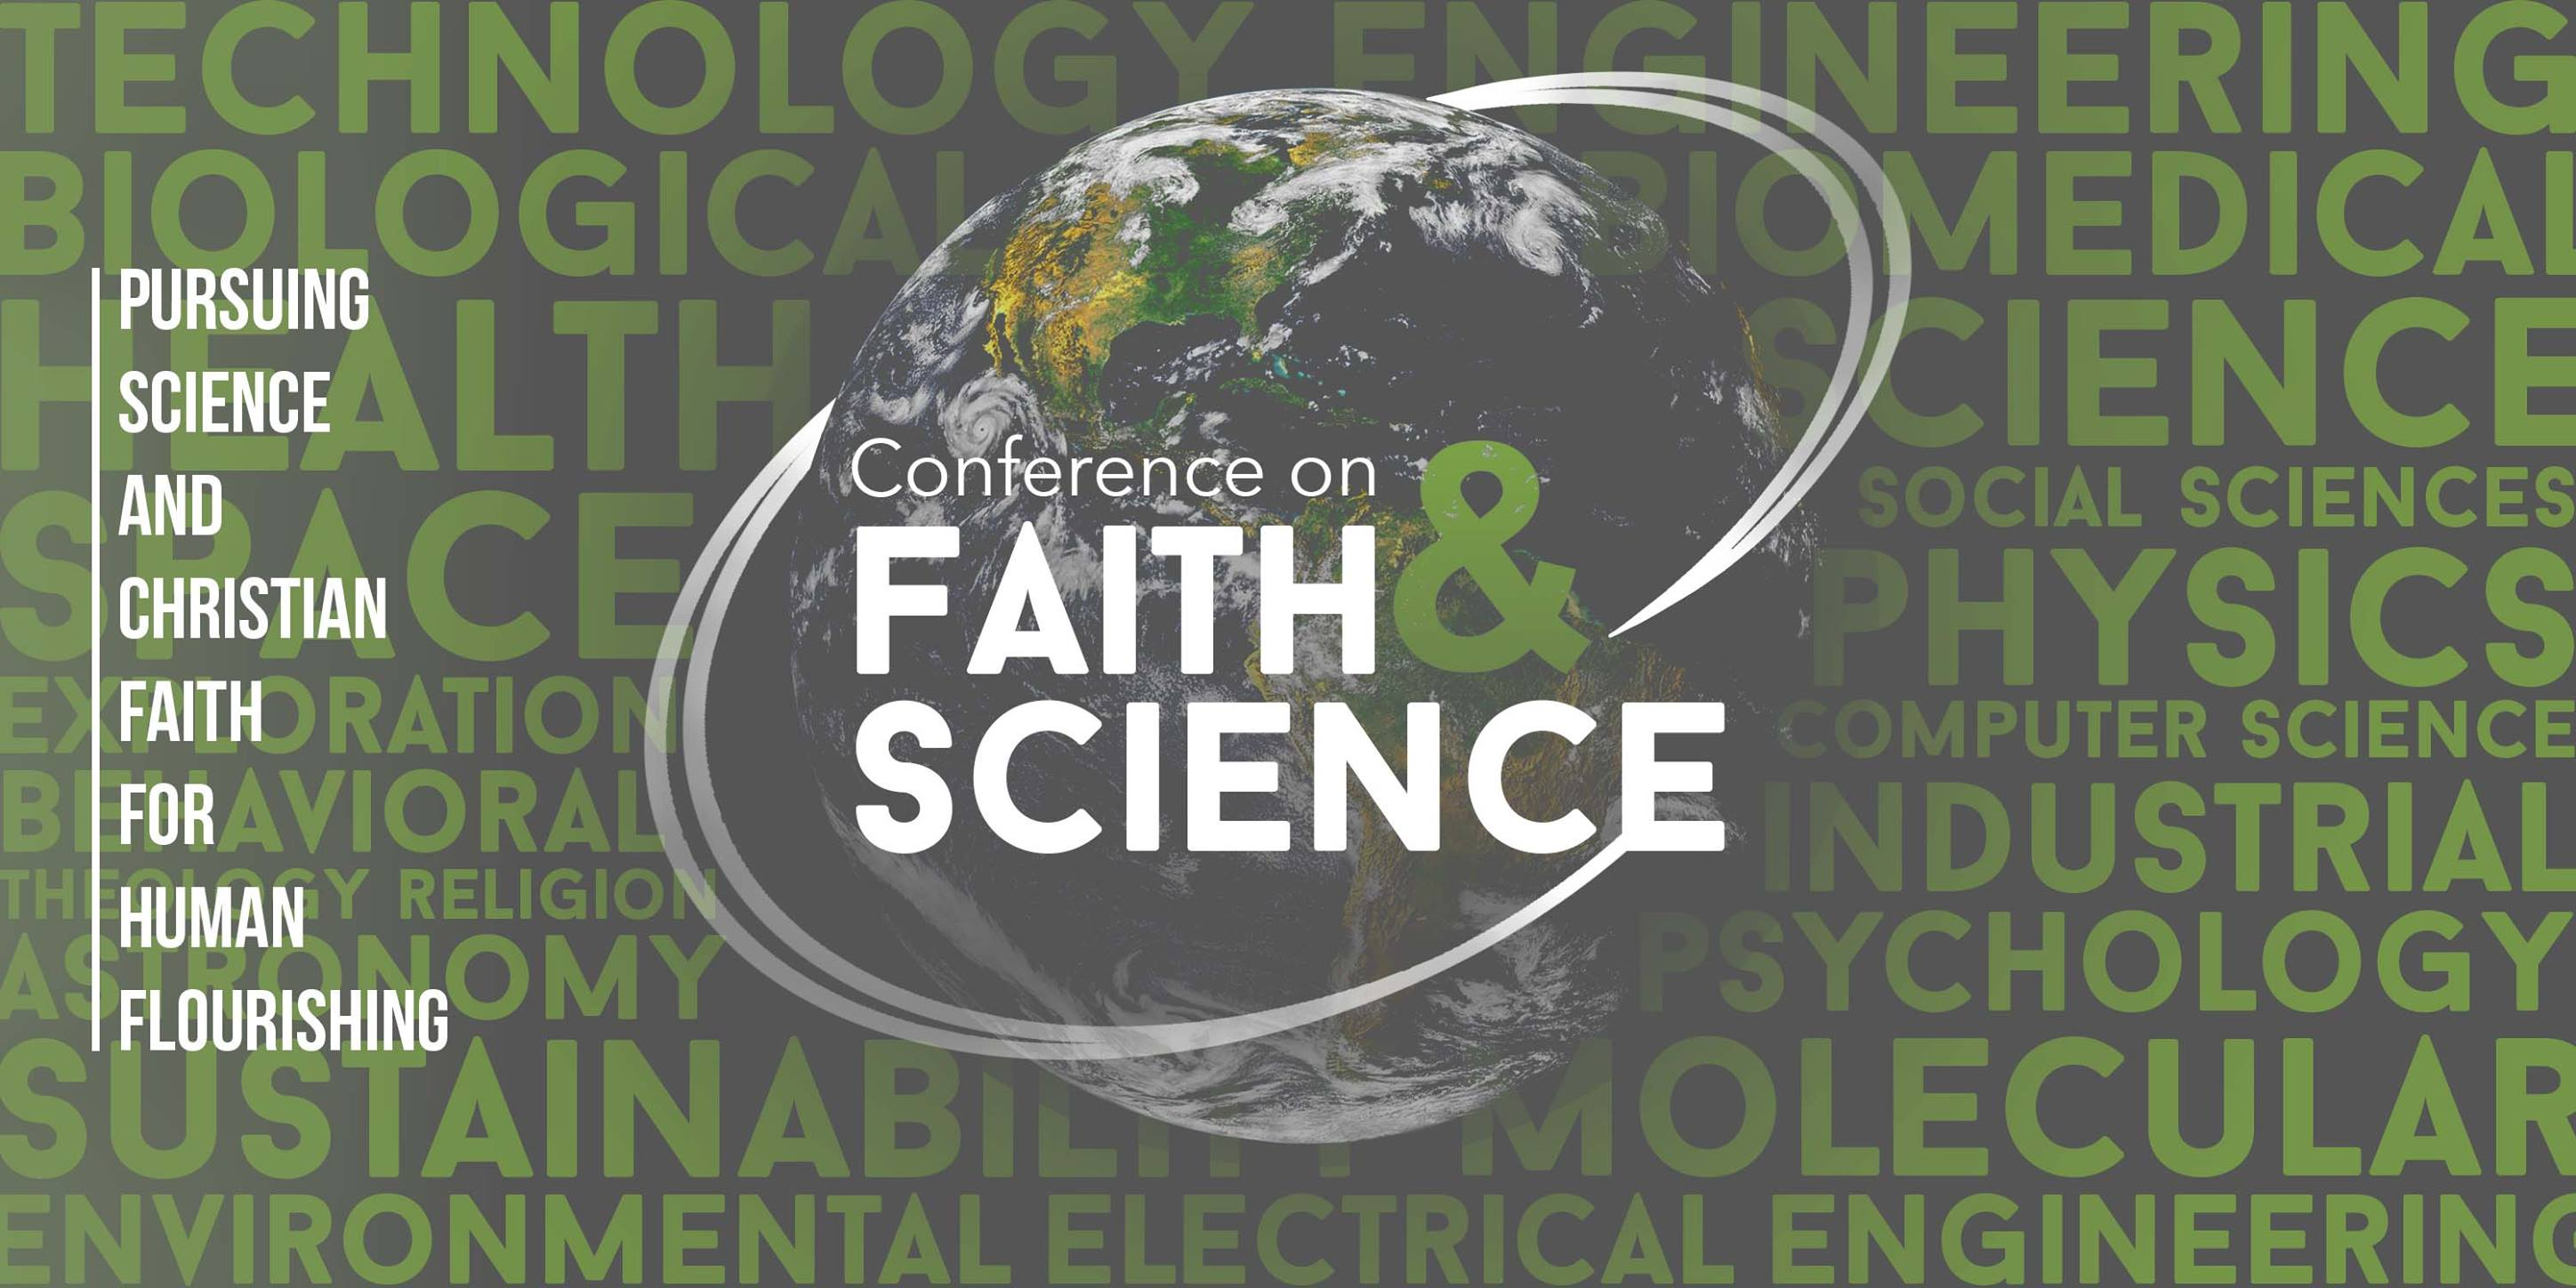 Conference on Faith and Science (COFAS) at ASU